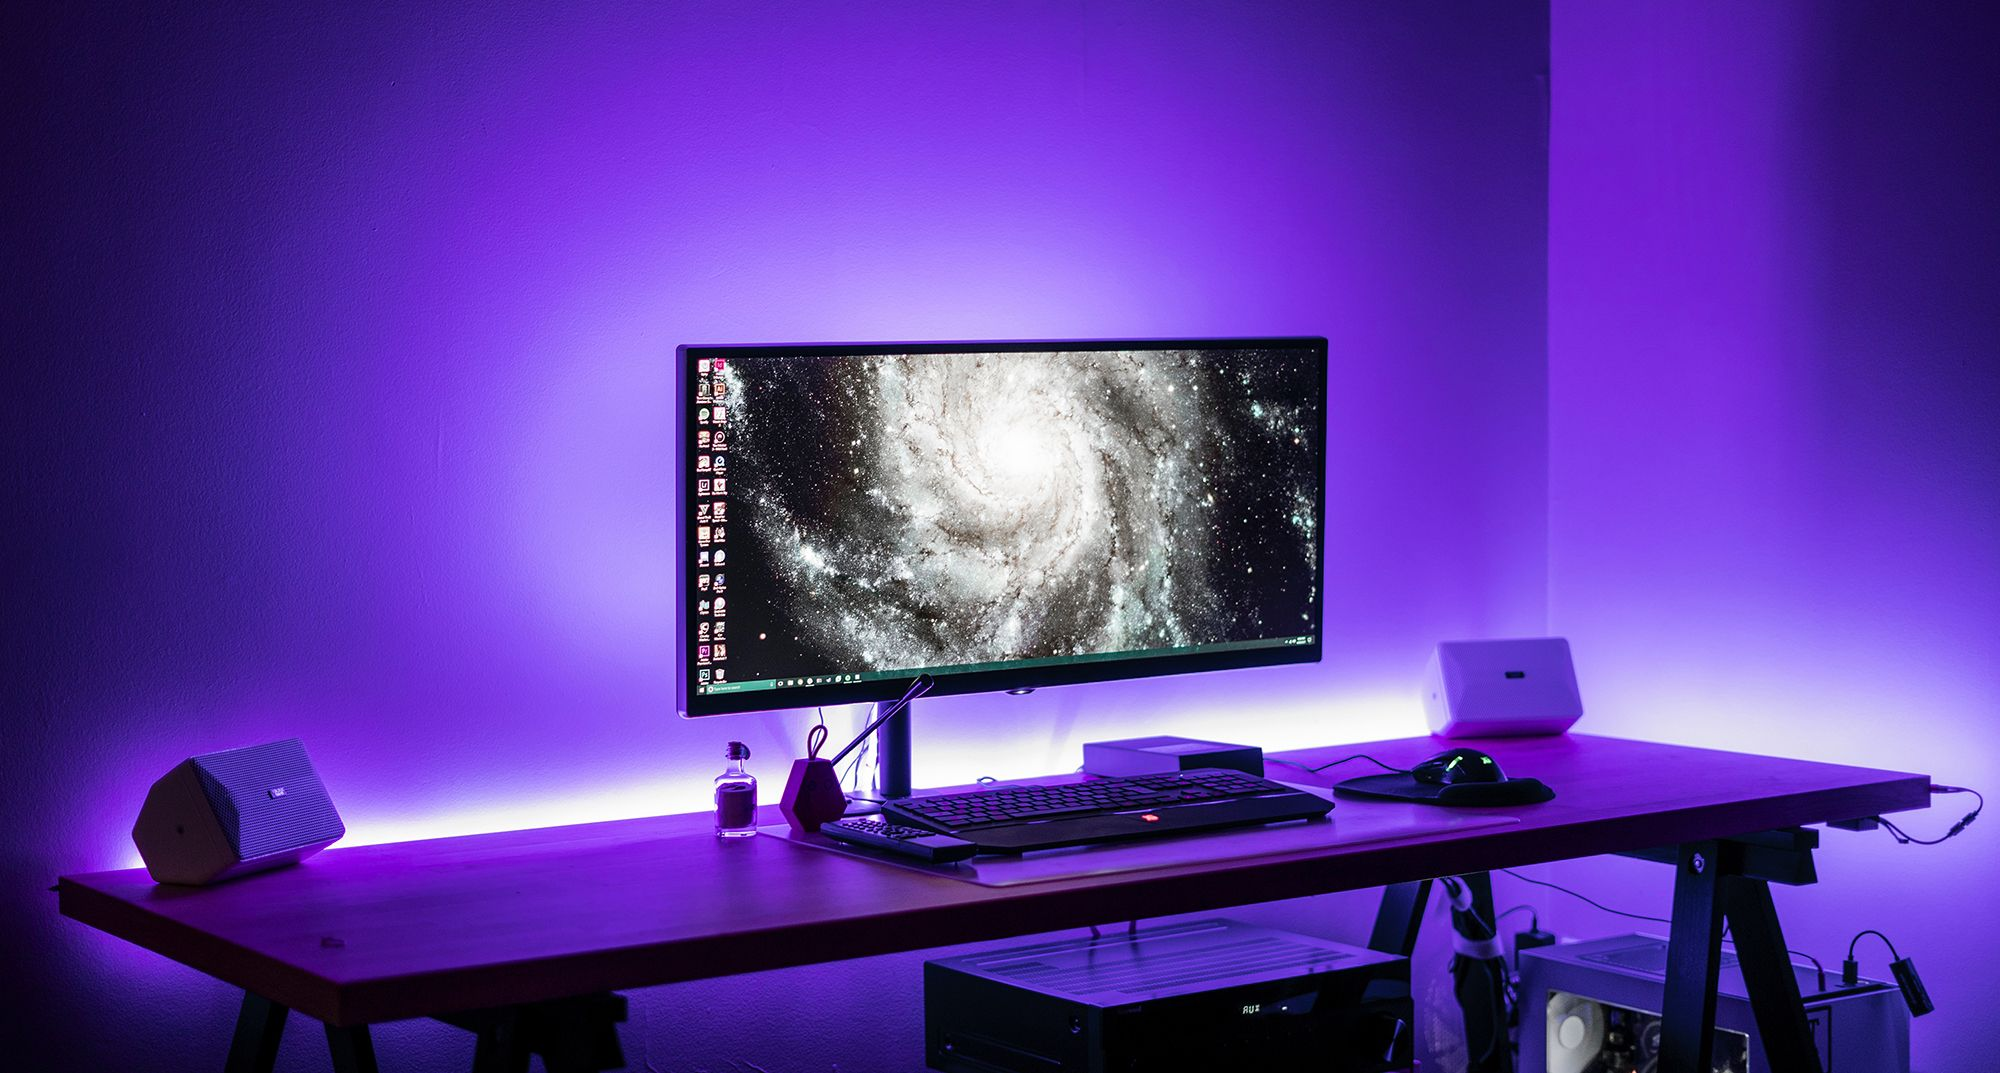 Make Your Desk Stand Out Among The Rest With Led Strip Lighting